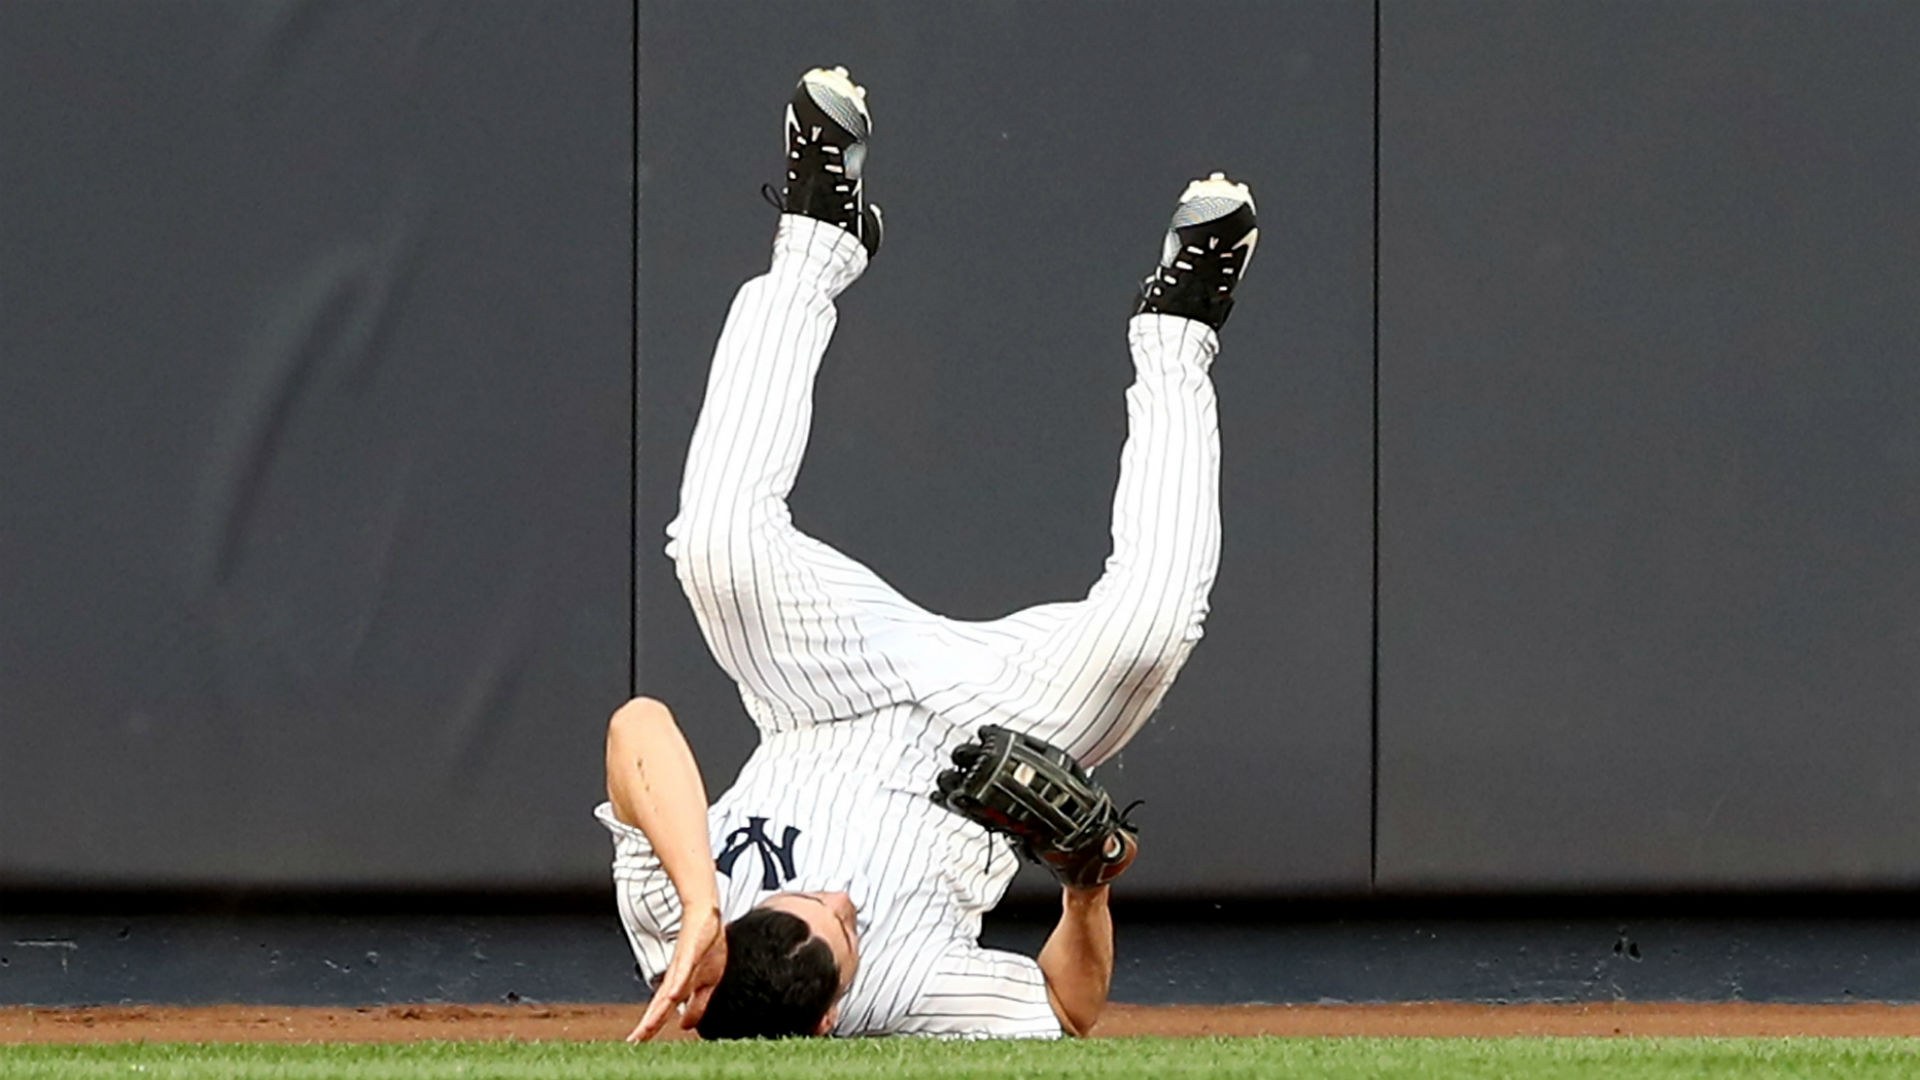 Jacoby Ellsbury Exits Game With Concussion After Slamming Into Outfield Wall